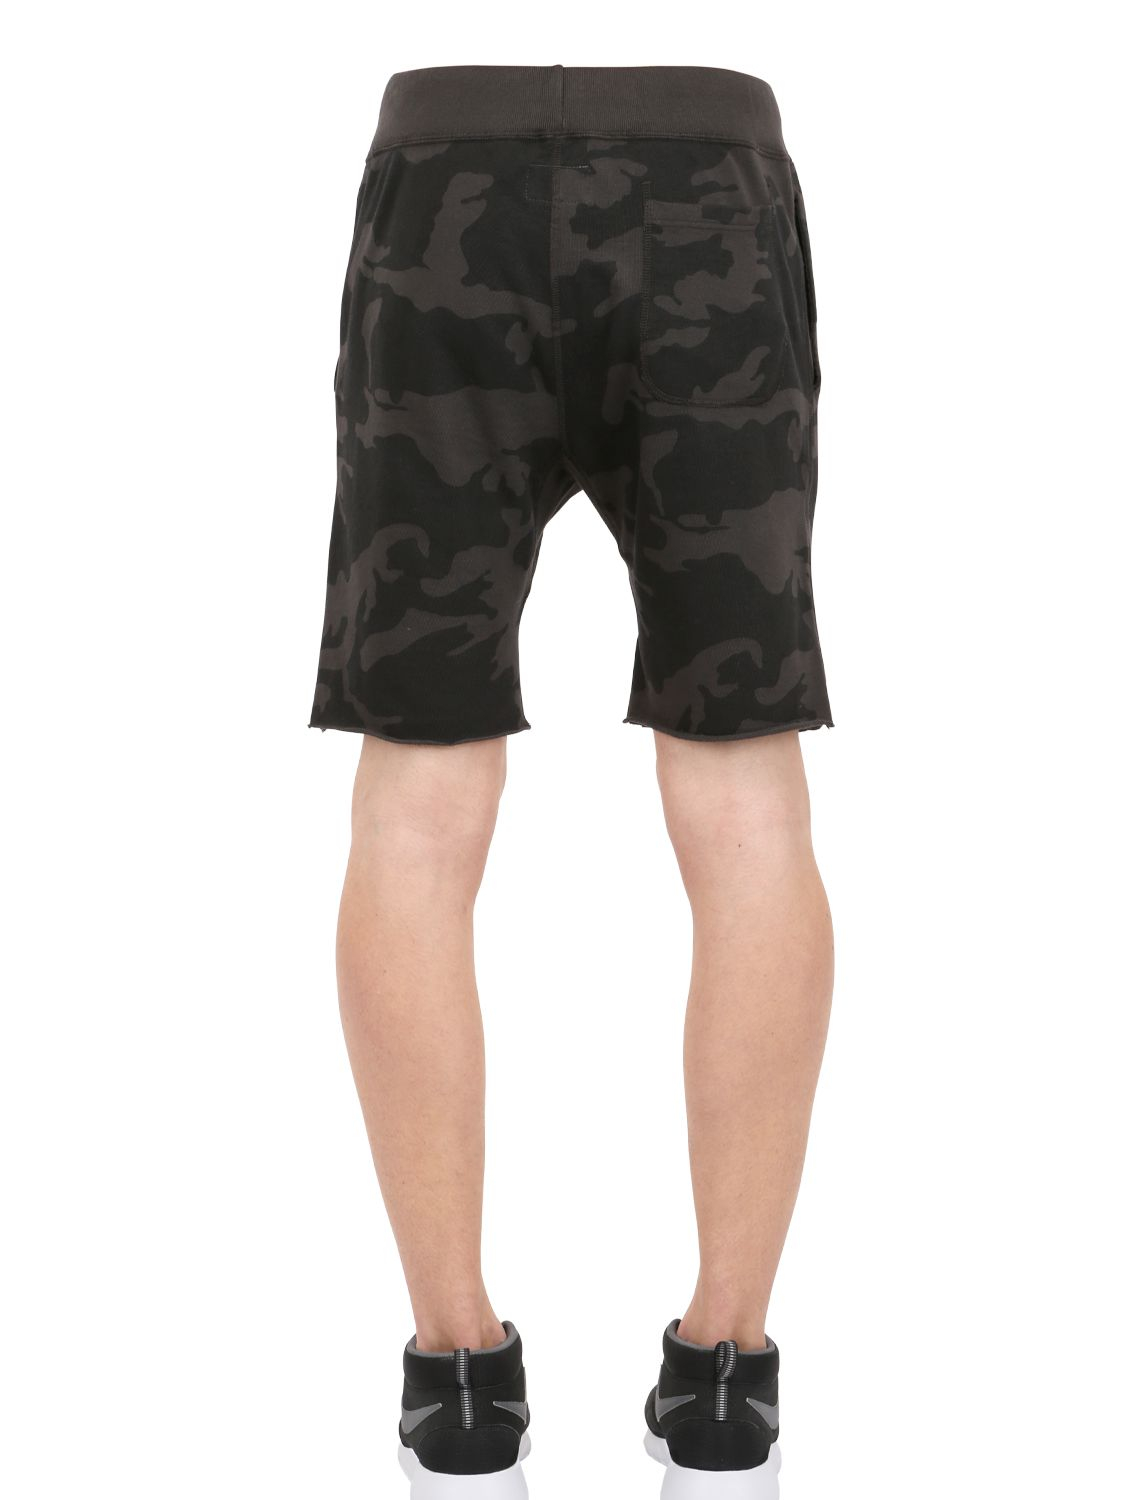 Todd Synder X Champion Camouflage Printed Cotton Jogging ...